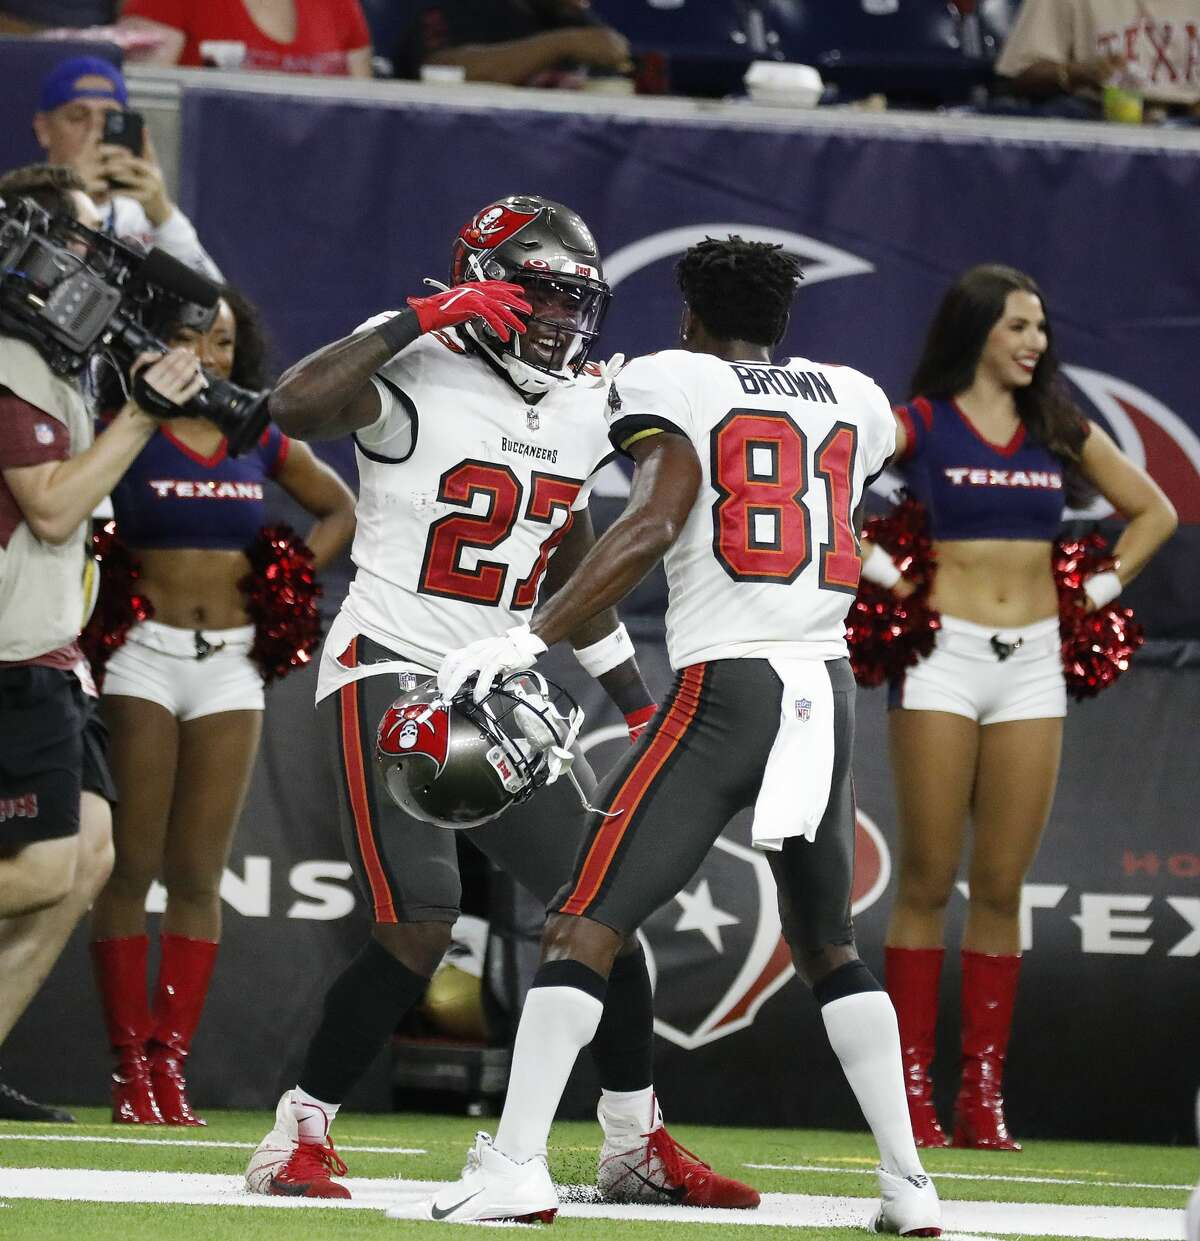 Tampa Bay Buccaneers running back Ronald Jones II (27) and wide receiver Antonio Brown (81) celebrate a touchdown during the first half of an NFL pre-season football game at NRG Stadium, Saturday, August 28, 2021, in Houston.